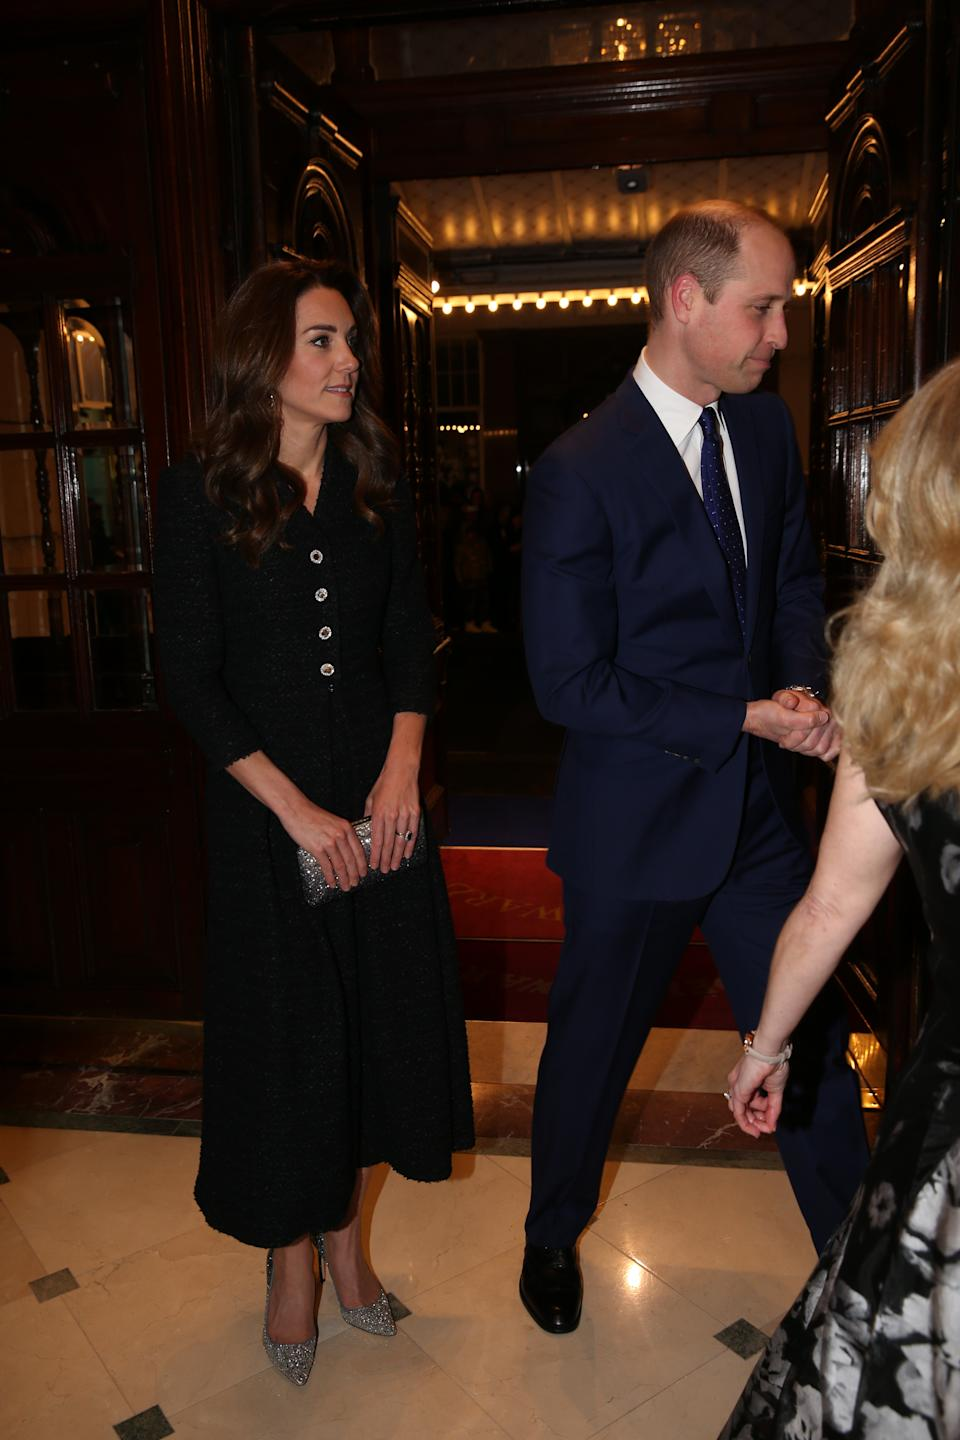 The Duke and Duchess of Cambridge attend a special performance of Dear Evan Hansen, at the Noel Coward Theatre in London.